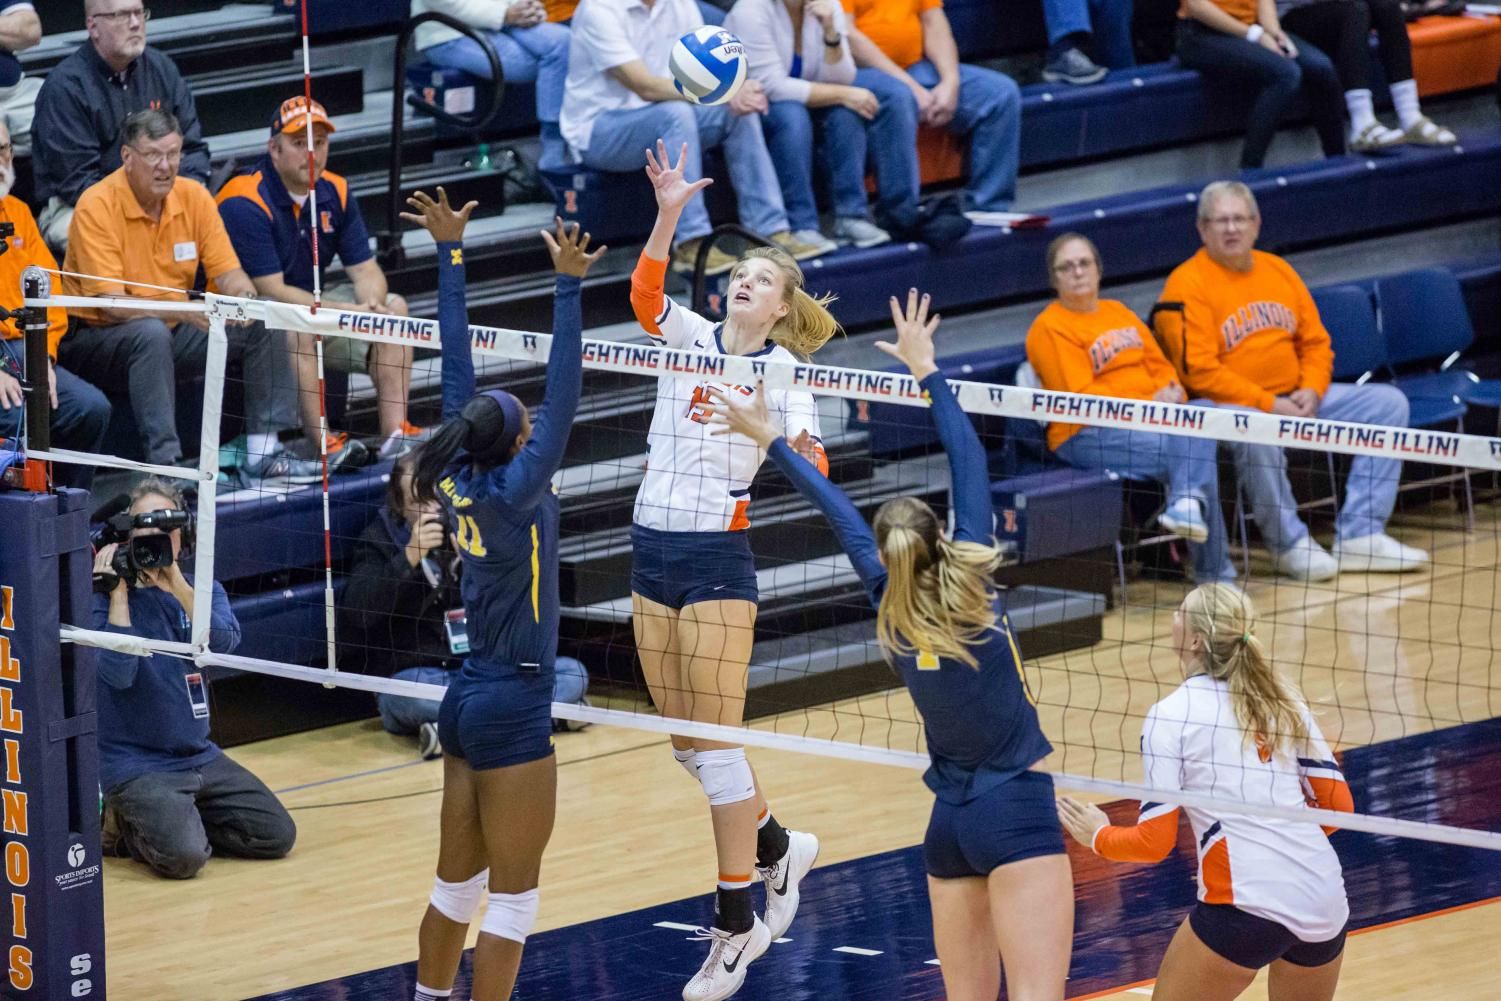 Illinois outside hitter Megan Cooney tips the ball over the net during the match against Michigan at Huff Hall on Nov. 5. The Illini won 3-2.